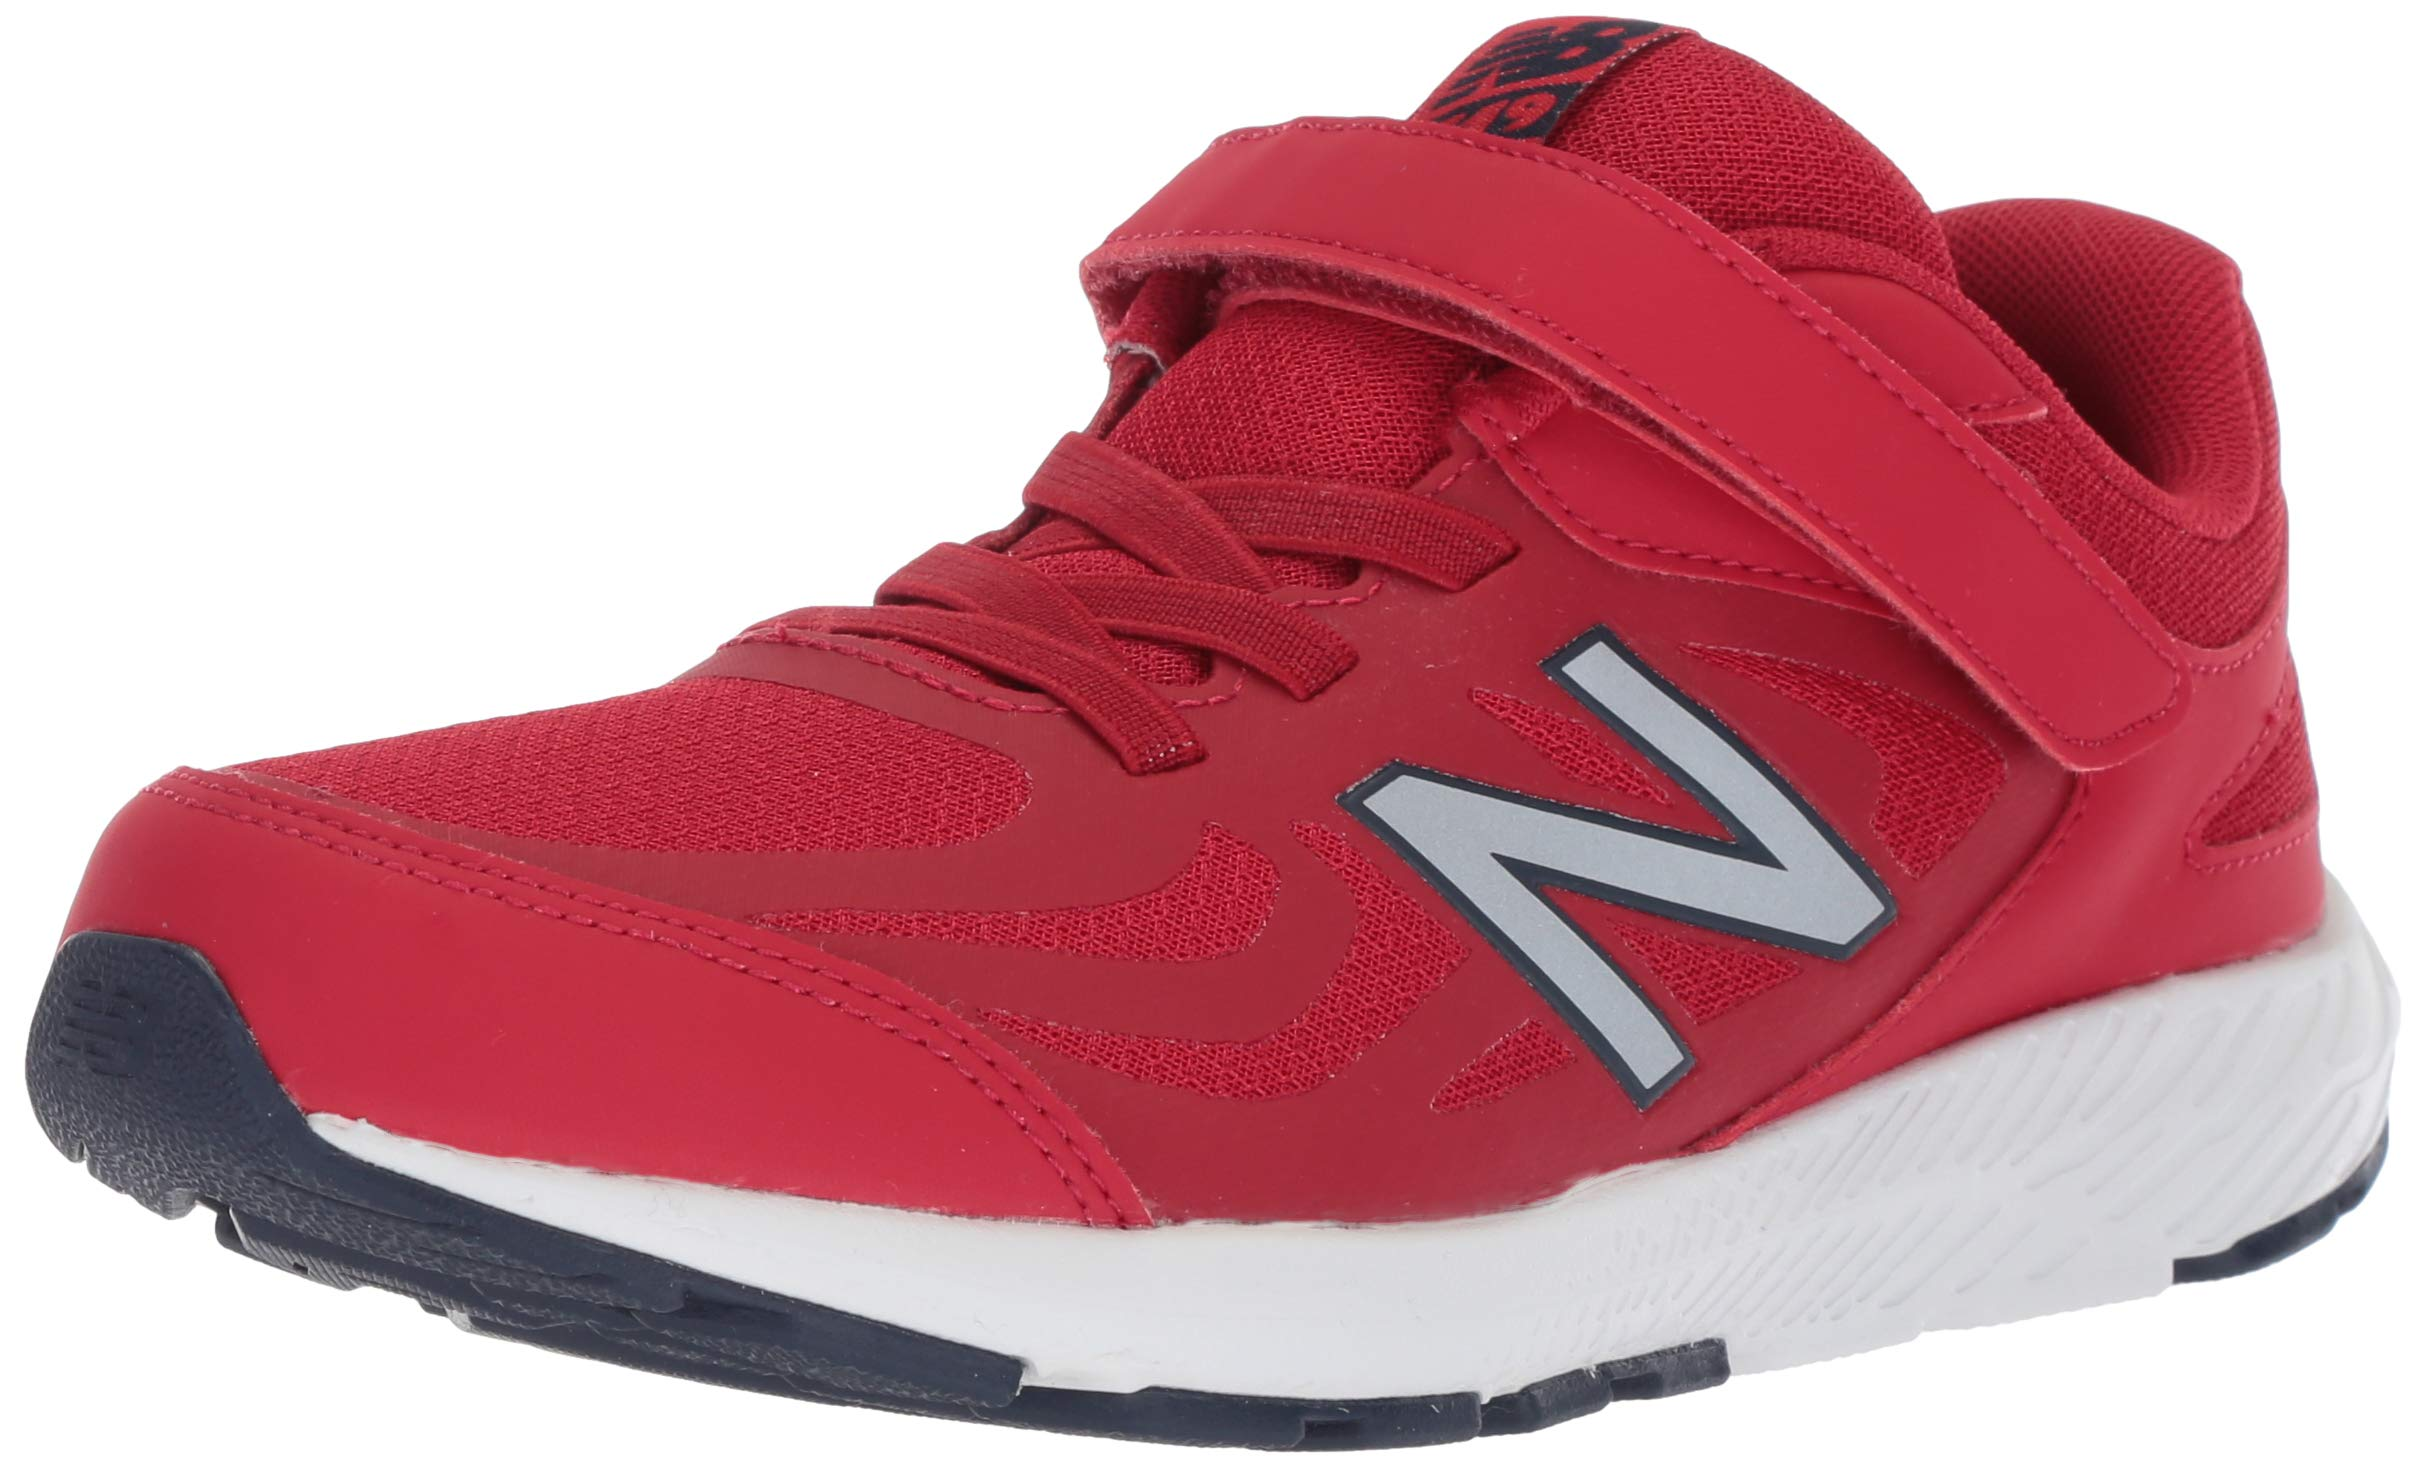 New Balance Boys' 519v1 Hook and Loop Running Shoe, Chili Pepper/Nubuck Scarlet, 2 M US Infant